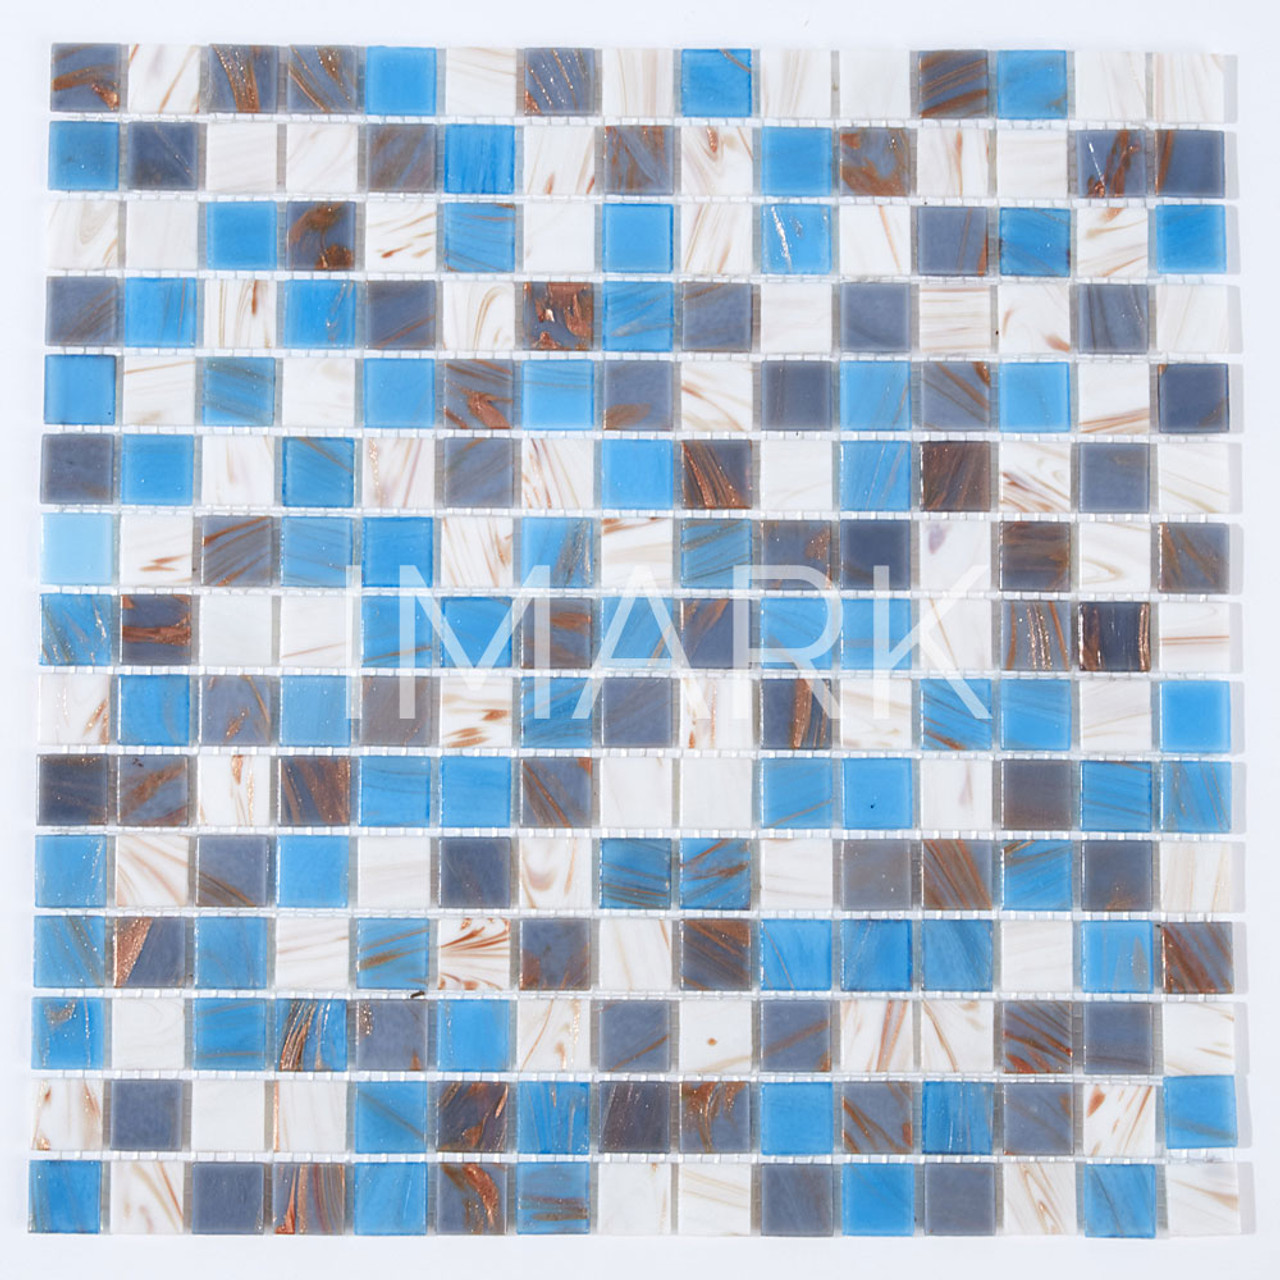 Aqua Blue Mix Glass Mosaic Tile For Swimming Pool & Spa From Direct ...